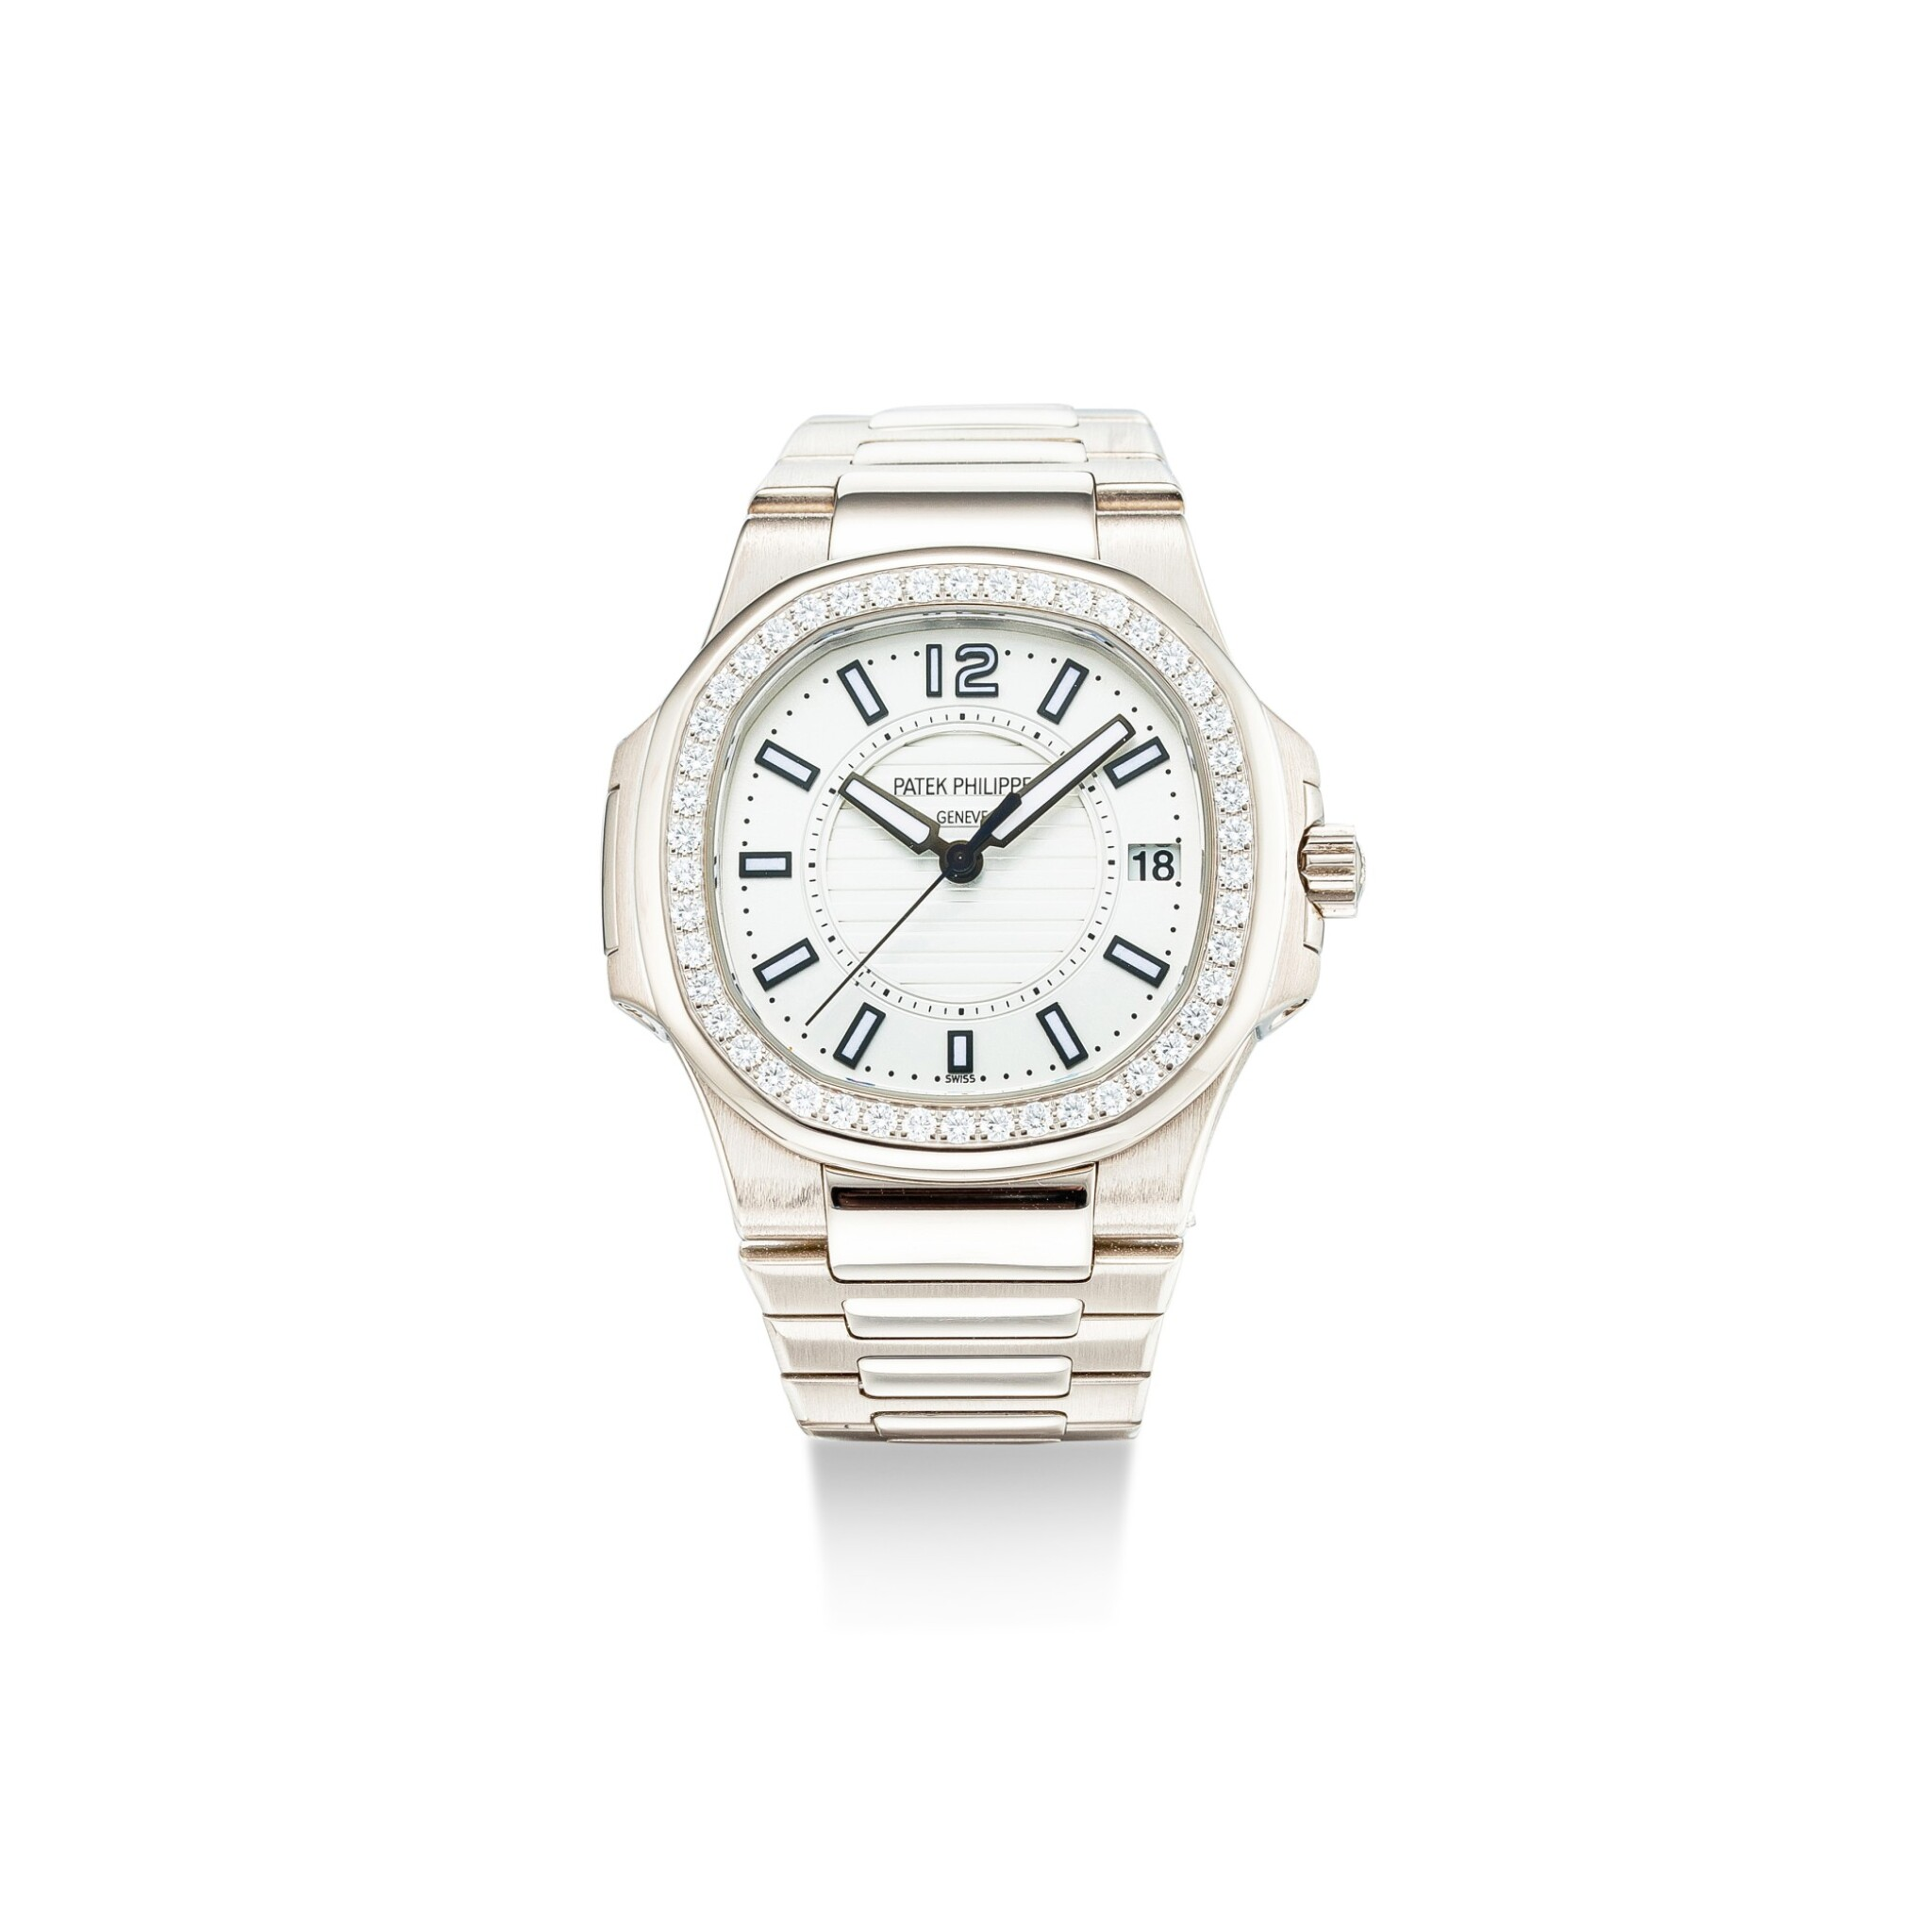 View full screen - View 1 of Lot 105. PATEK PHILIPPE | NAUTILUS, REFERENCE 7010, A WHITE GOLD AND DIAMOND-SET BRACELET WATCH WITH DATE, CIRCA 2008.